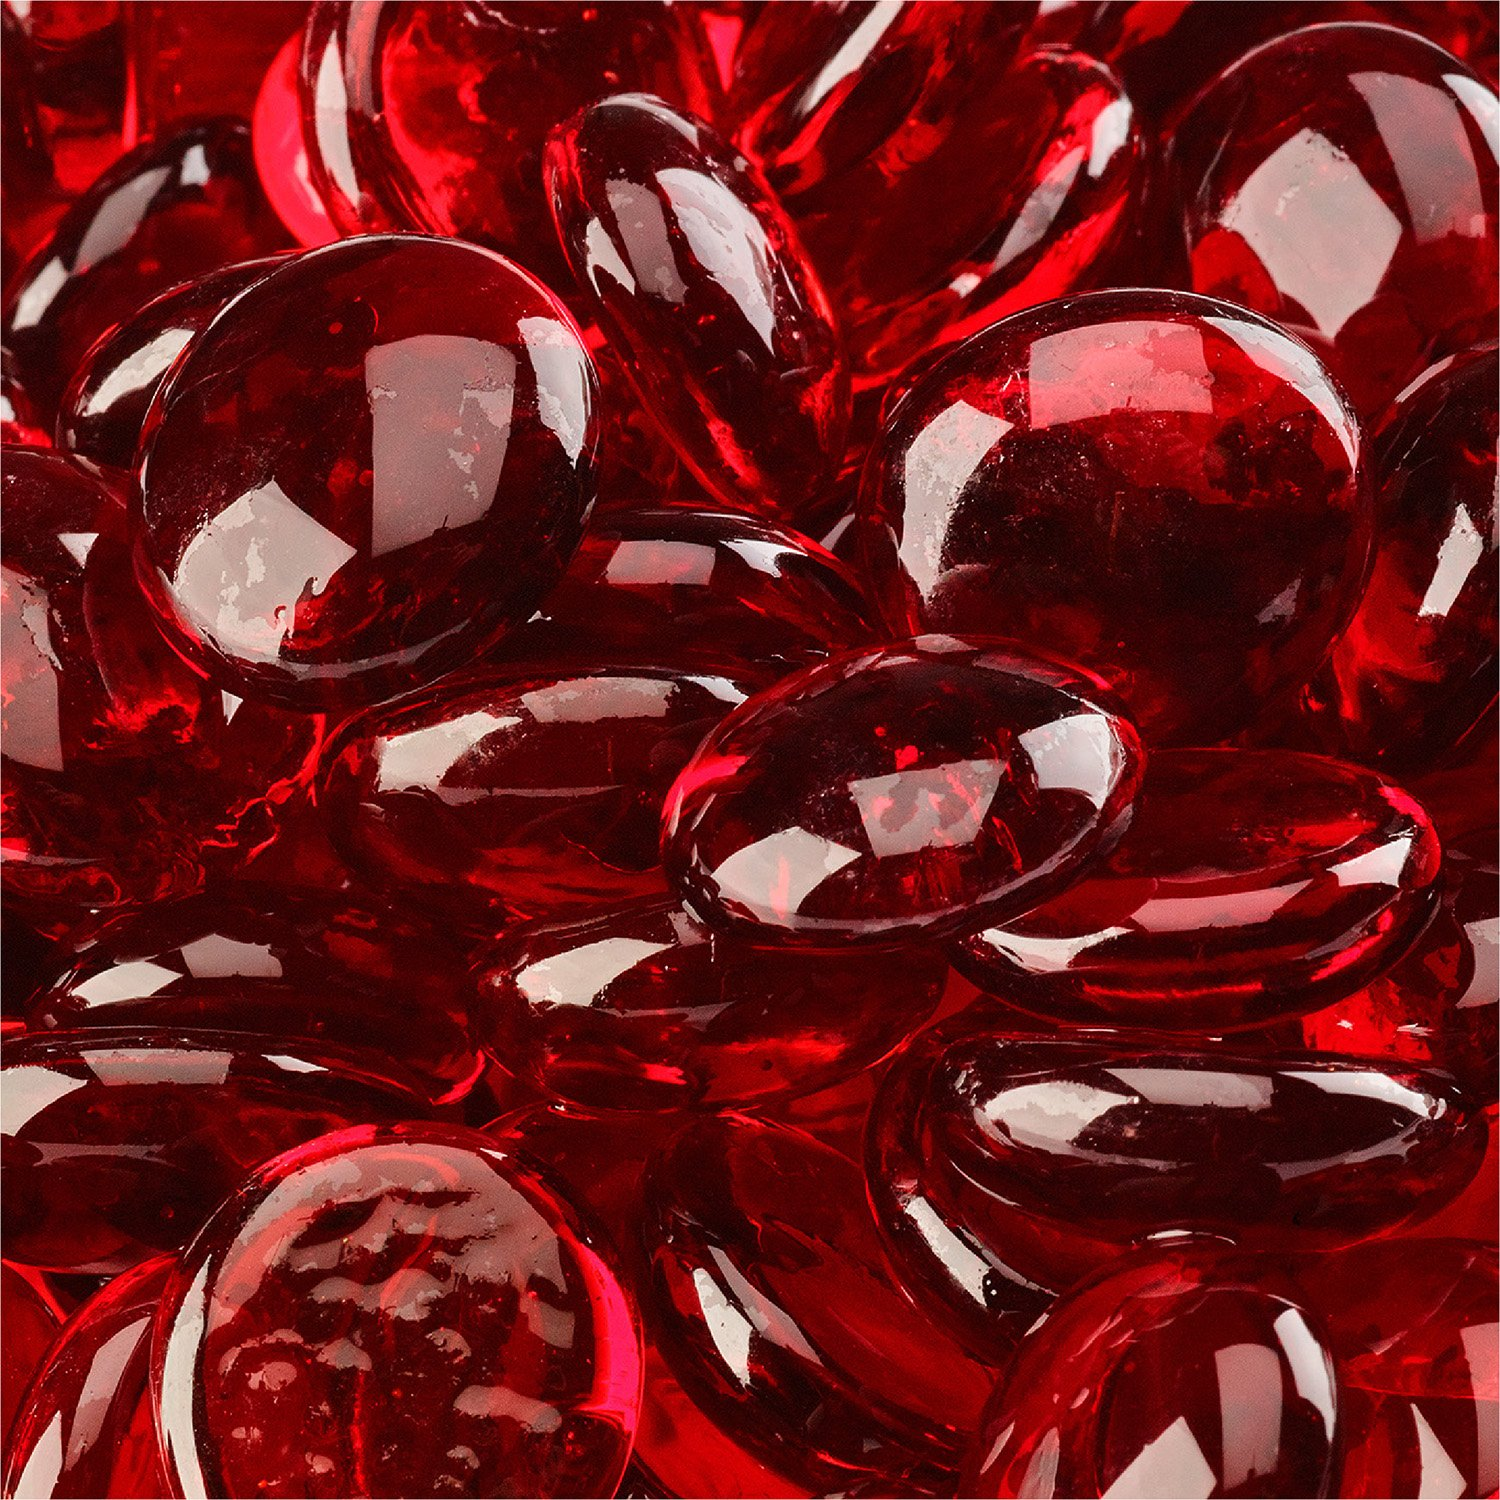 Red Fire Glass for Indoor and Outdoor Fire Pits or Fireplaces | 10 Pounds | Marlboro Red, Fire Glass Diamonds, 1 Inch Fire Pit Essentials